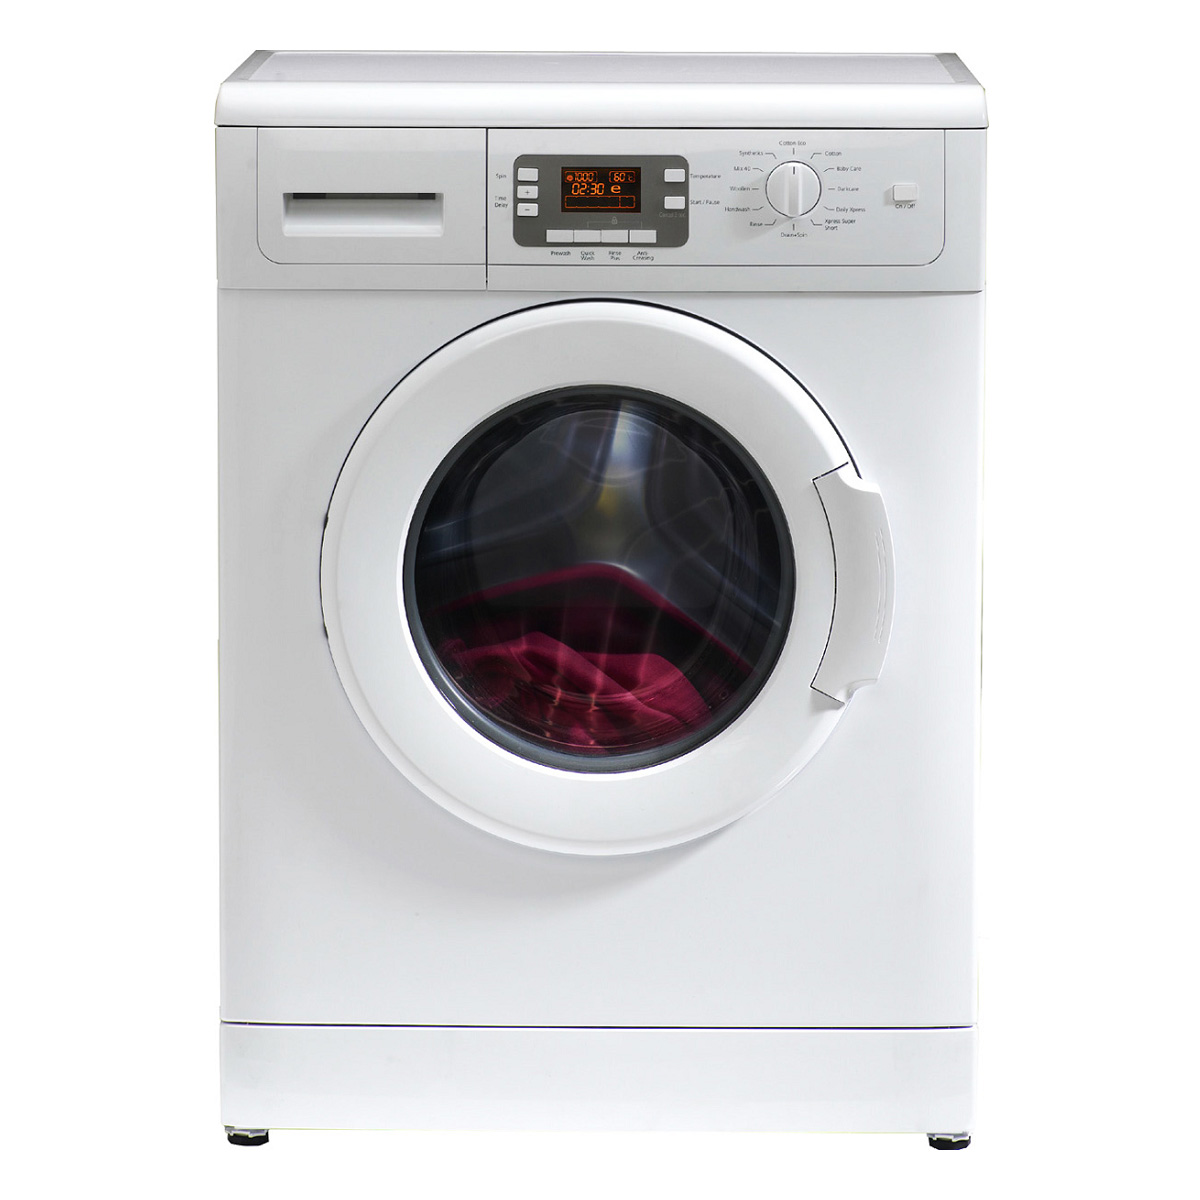 Euromaid WM7 7kg Front Load Washing Machine